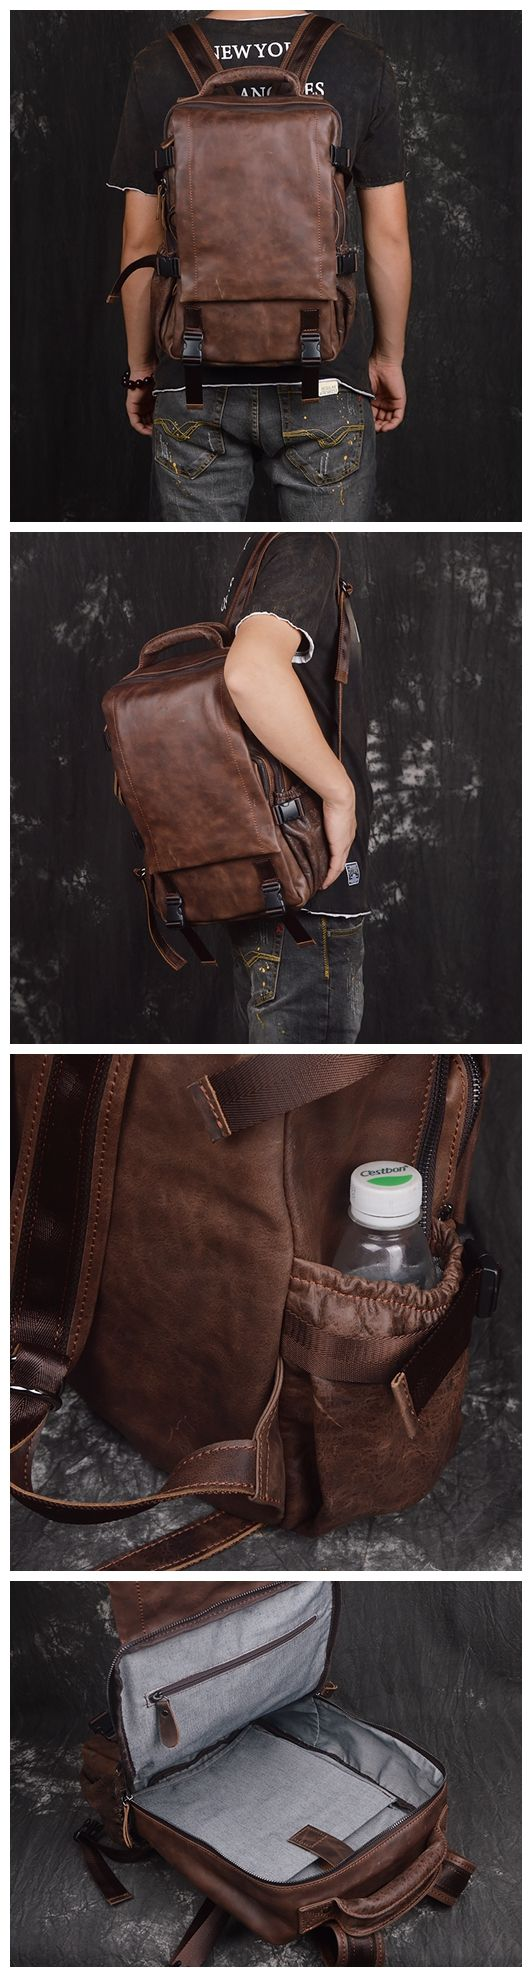 HANDCRAFTED GENUINE LEATHER BACKPACK, TRAVEL BACKPACK, LAPTOP BAG, SCHOOL BACKPACK